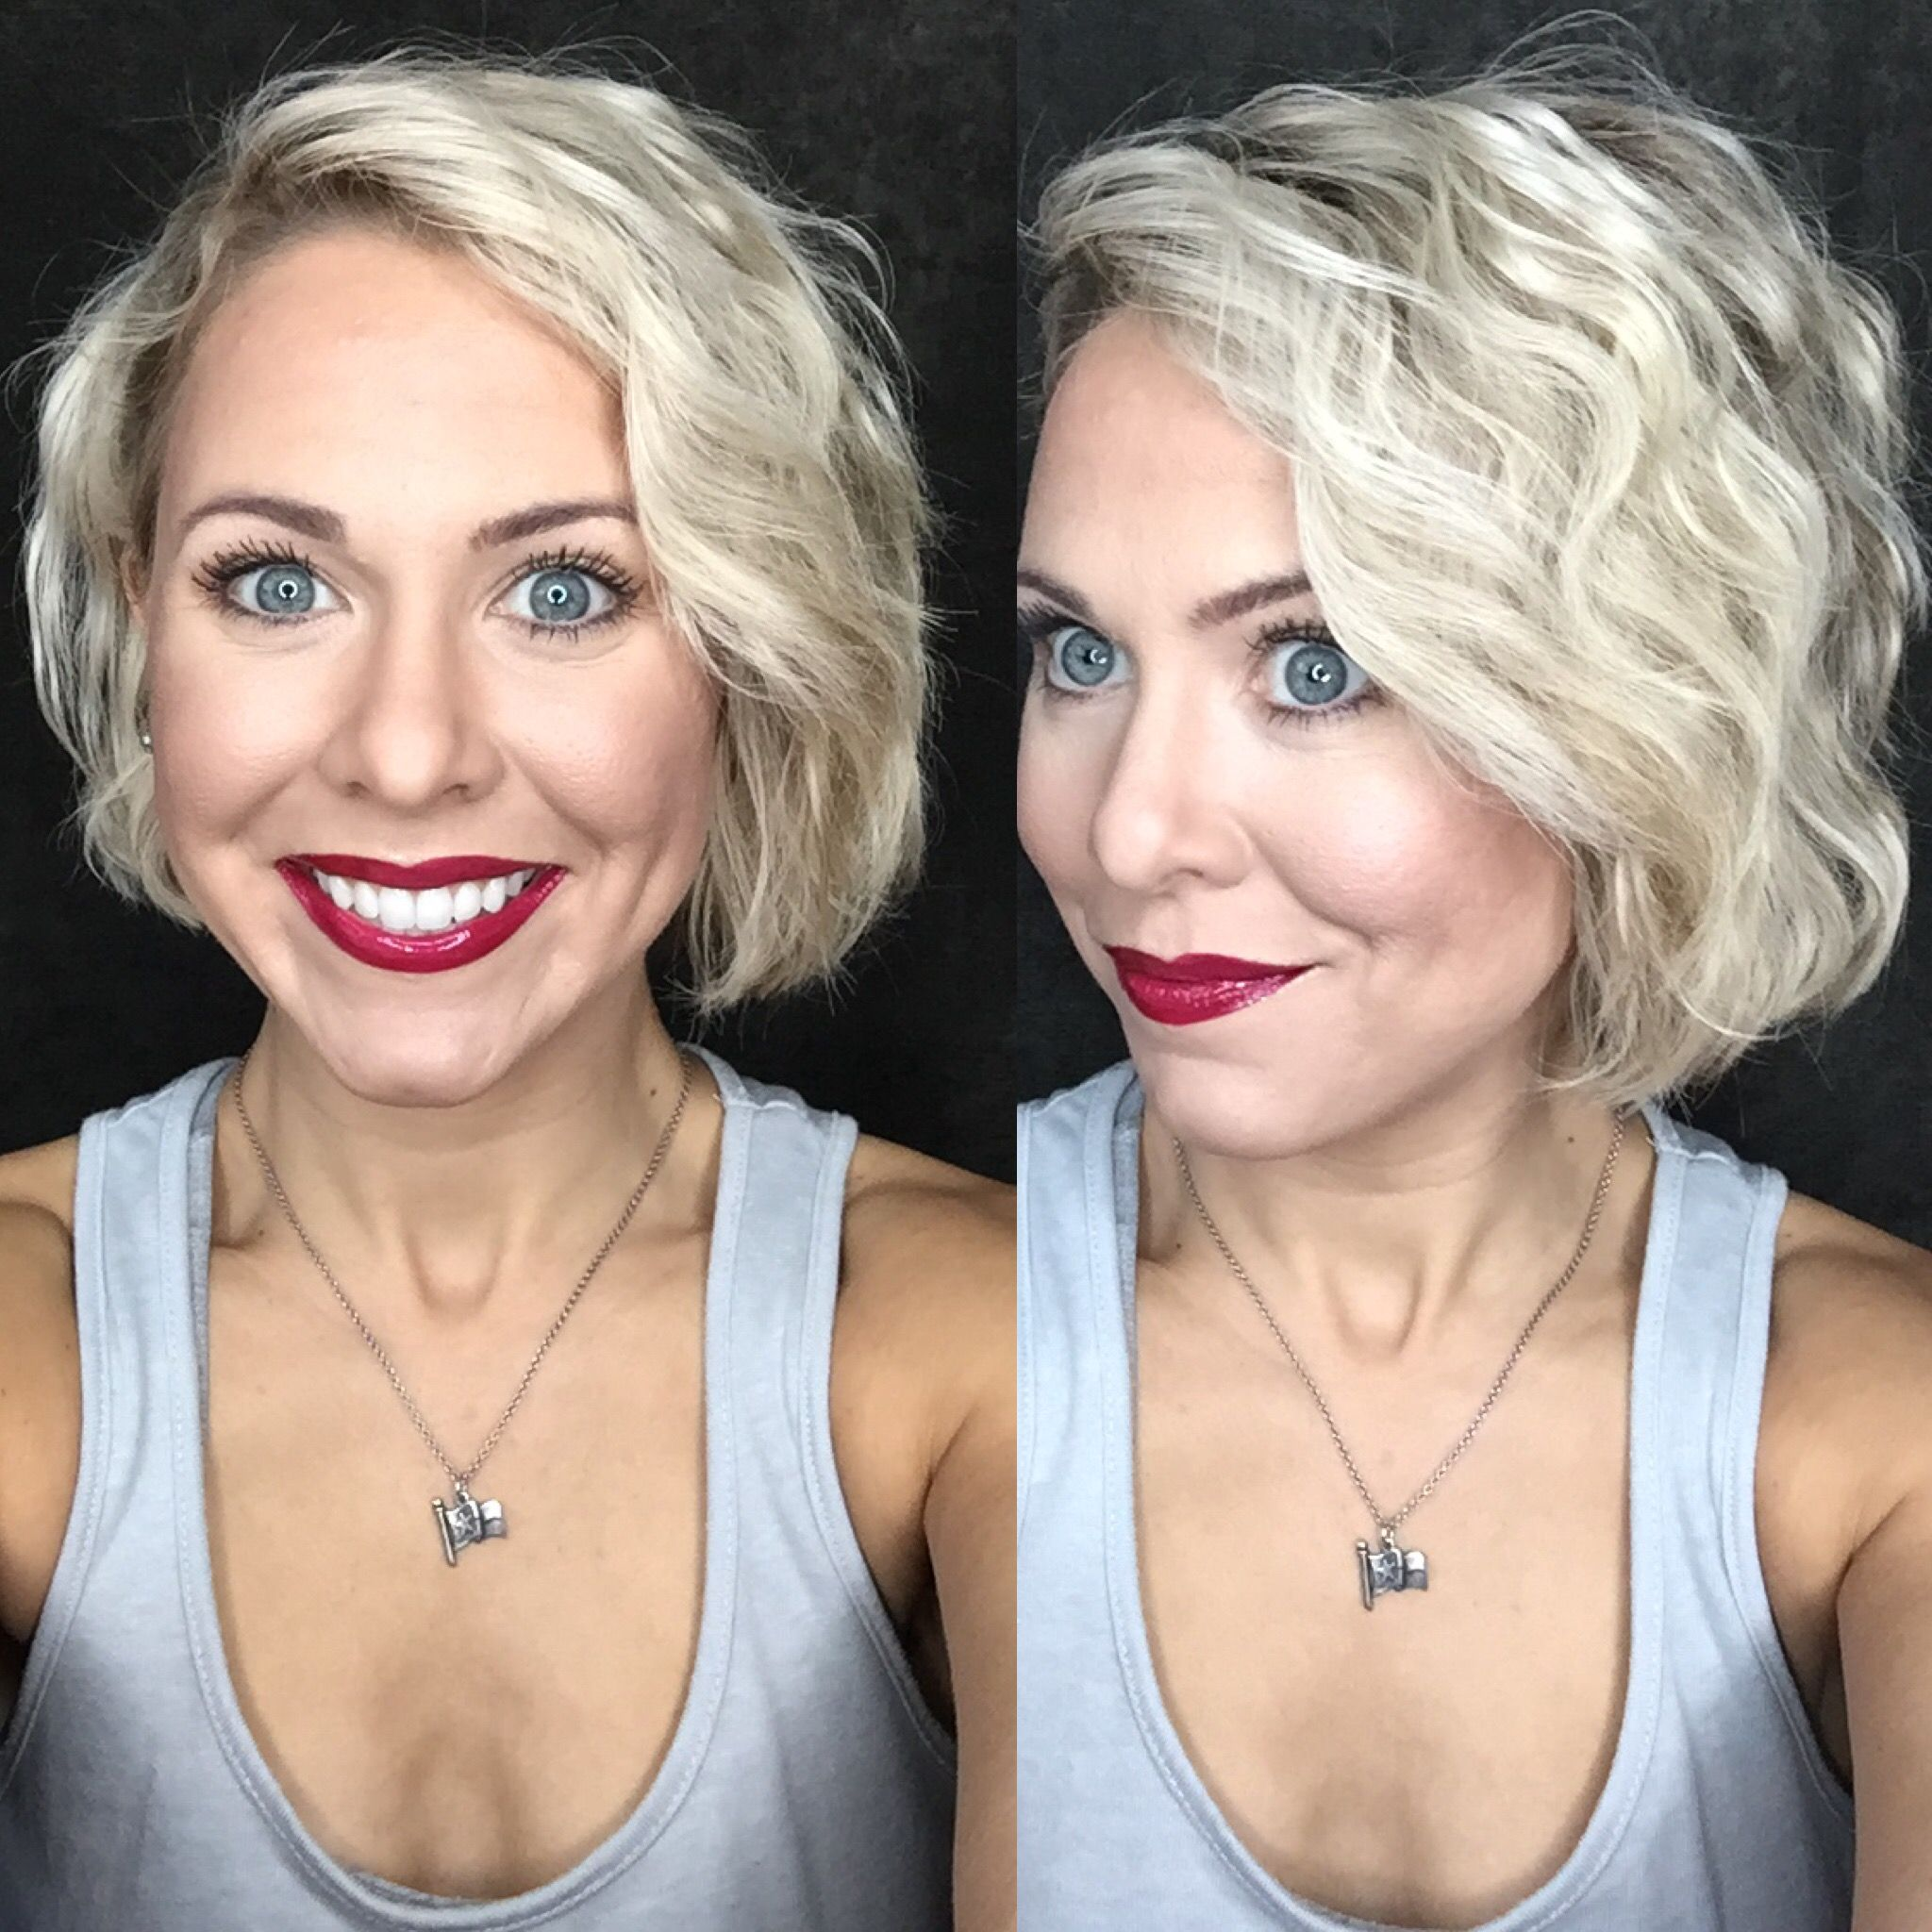 Bed Head Wave Artist on short hair. All SeneGence makeup